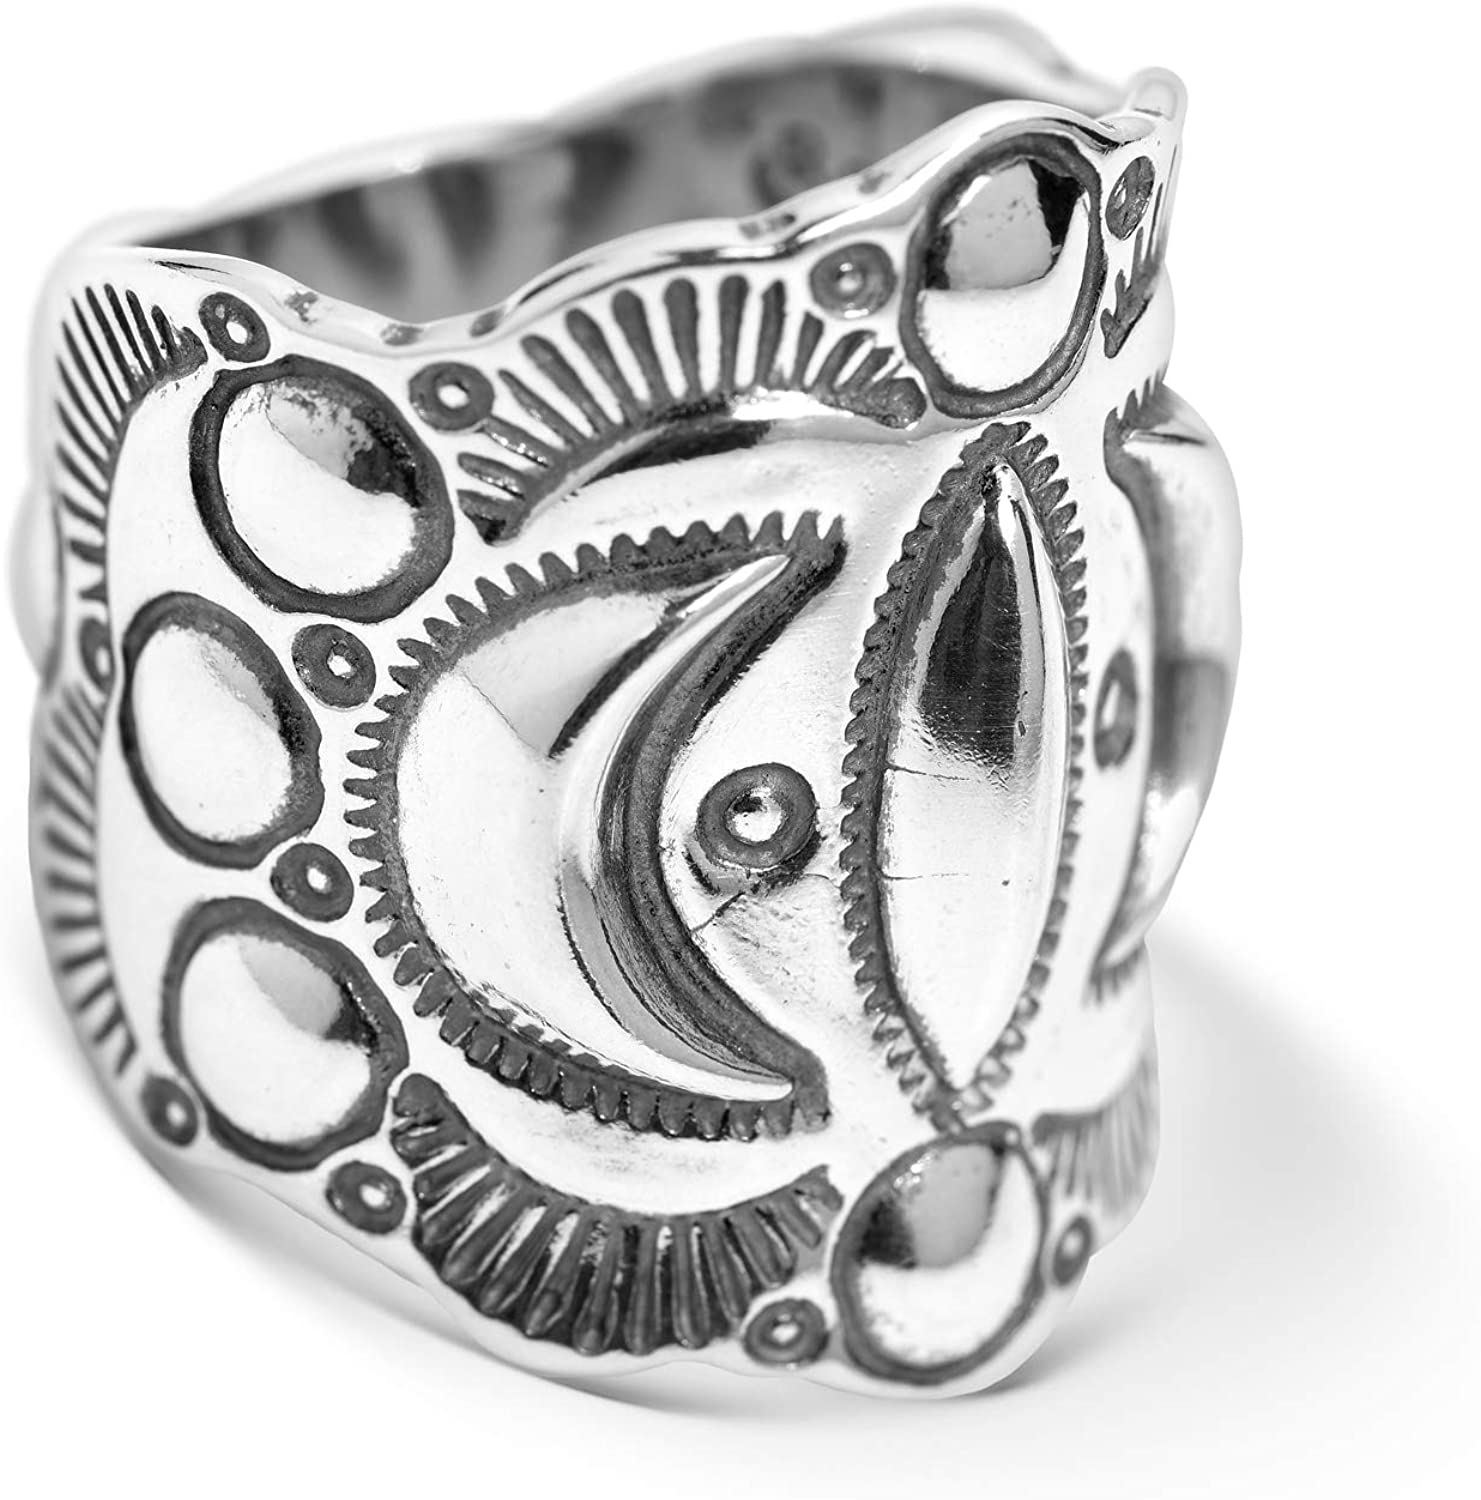 American West Sterling Silver Fritz Casuse Designed Moon Raised Relief Wide Band Ring Size 7 to 13